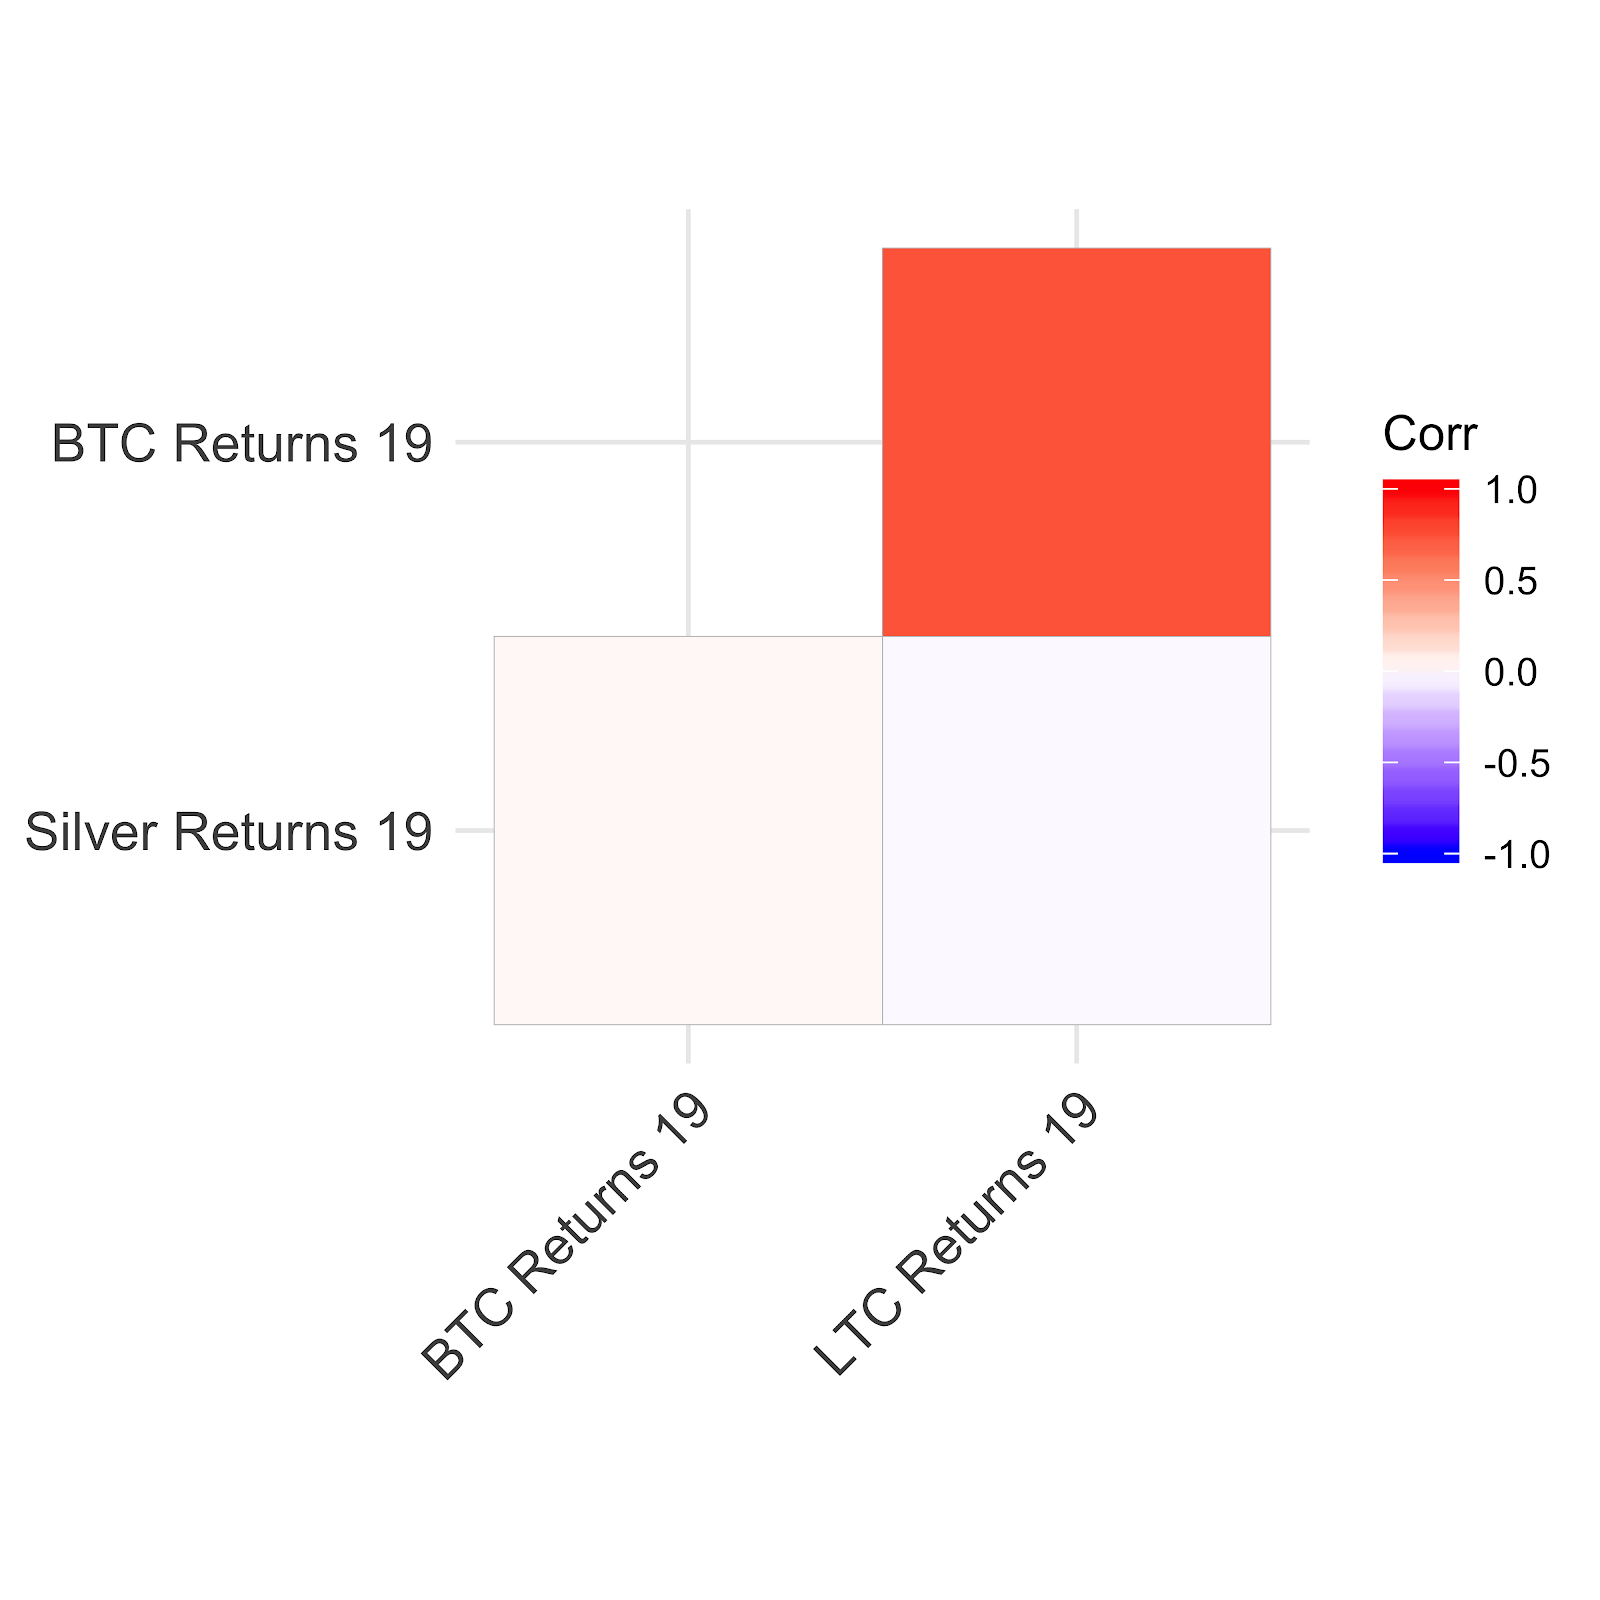 Correlation in 2019 between Silver returns, BTC returns, and Litecoin returns